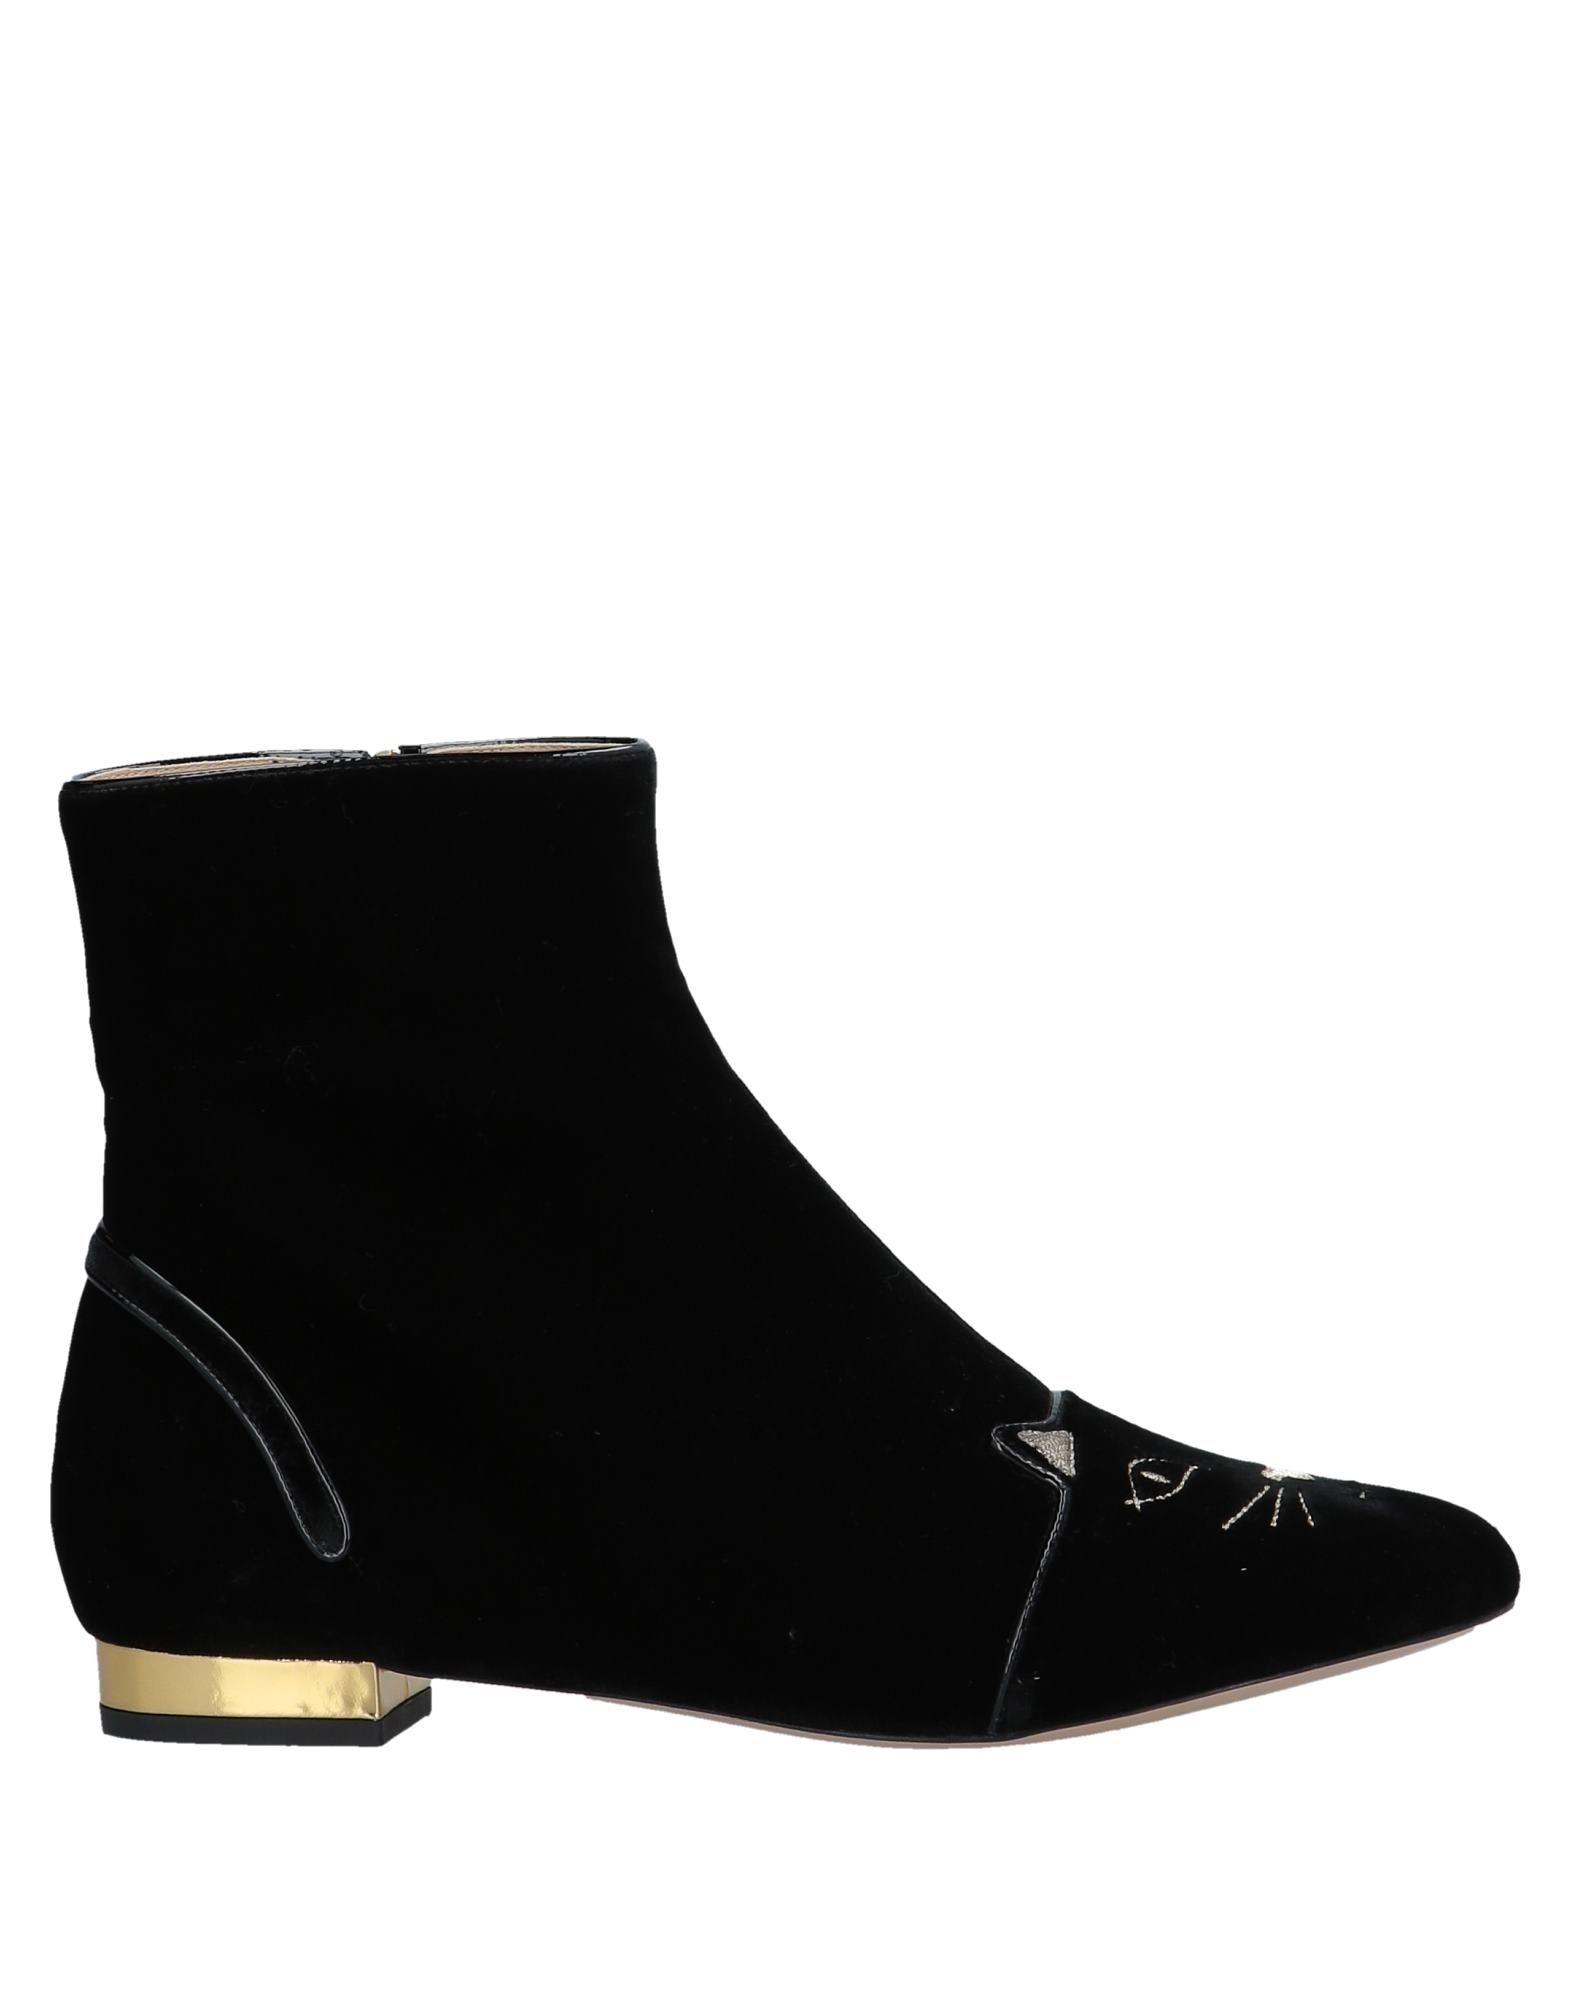 Charlotte Olympia Ankle Boot - Boots Women Charlotte Olympia Ankle Boots - online on  Australia - 11536748HX 1b3a83